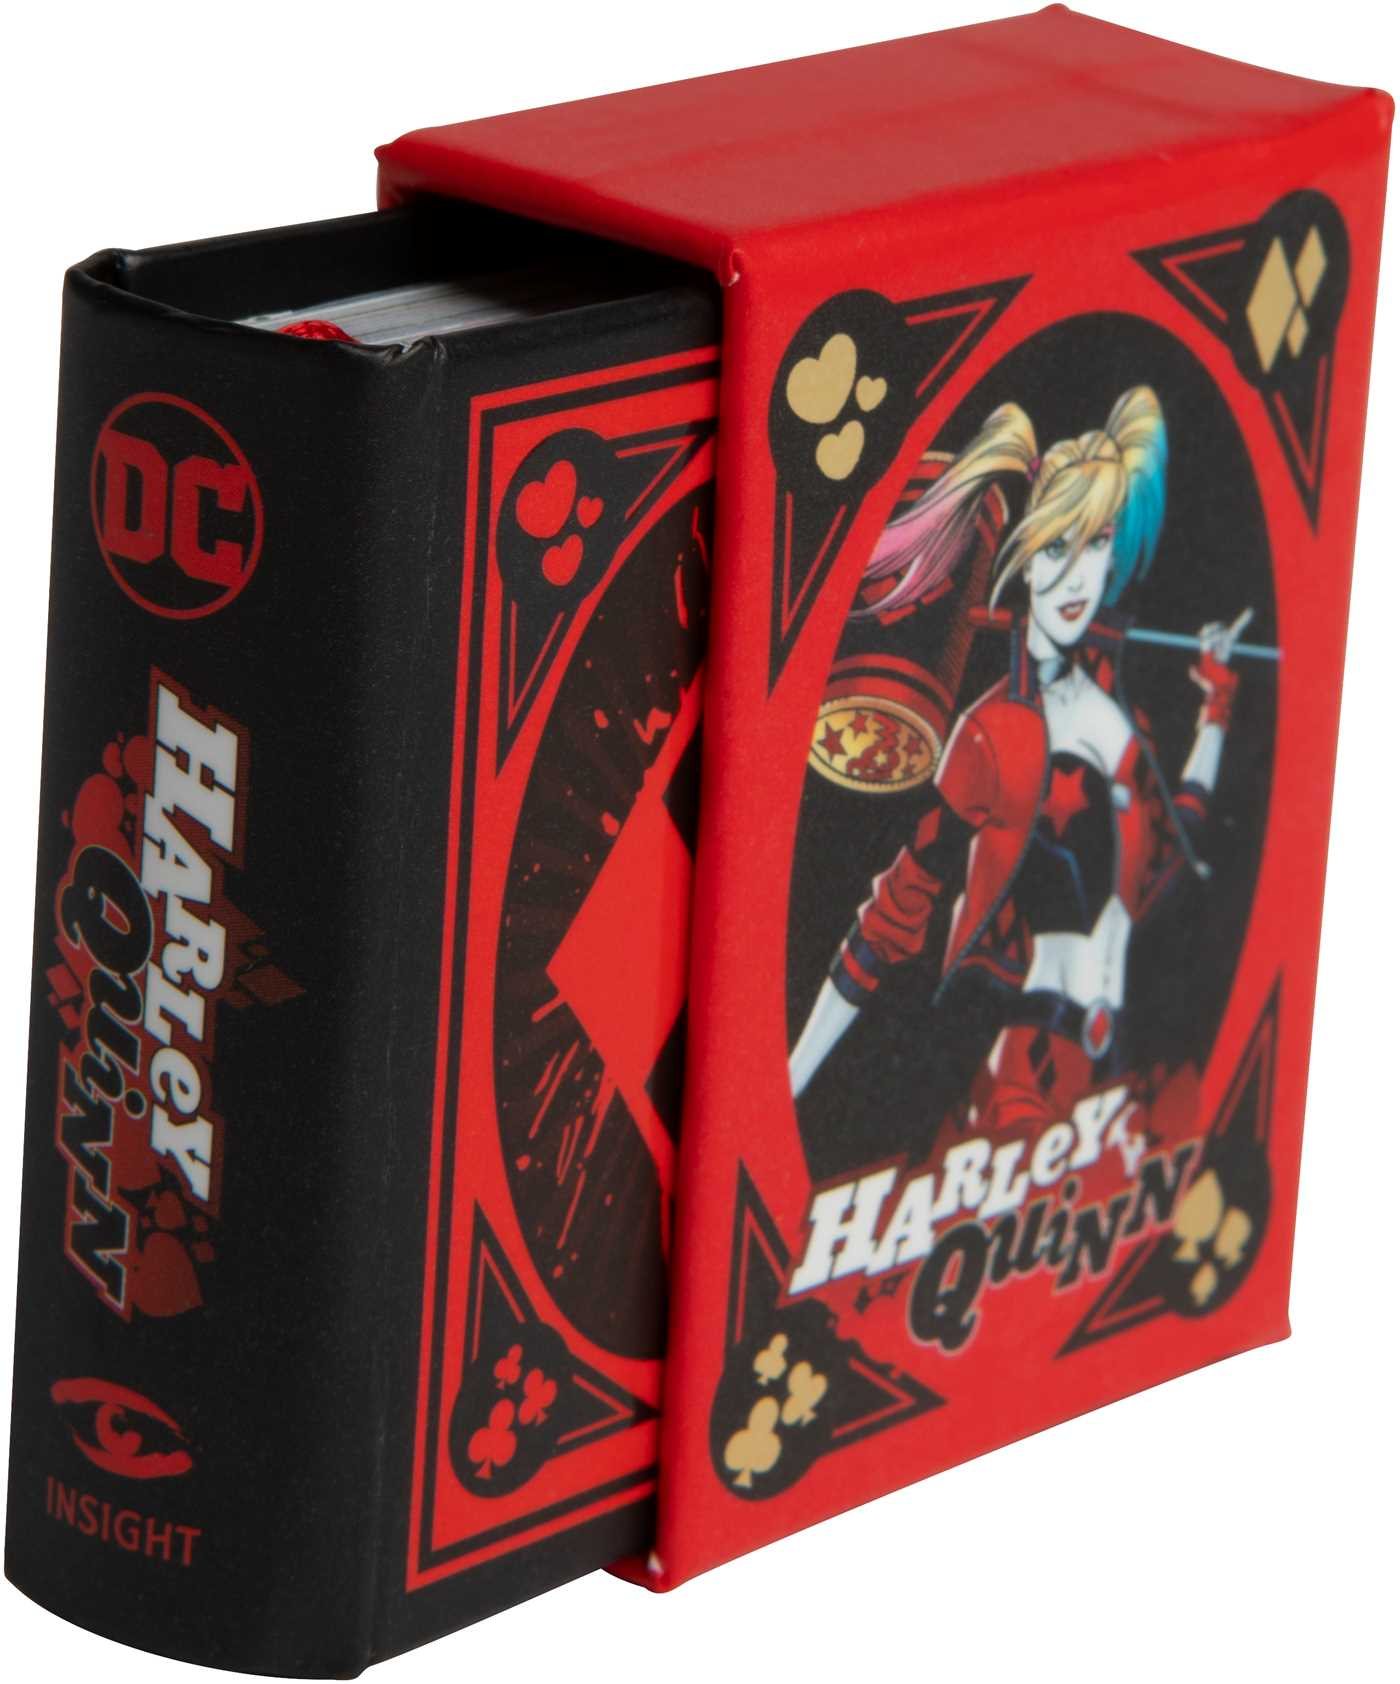 Dc Harley Quinn Tiny Book Book By Darcy Reed Official Publisher Page Simon Schuster